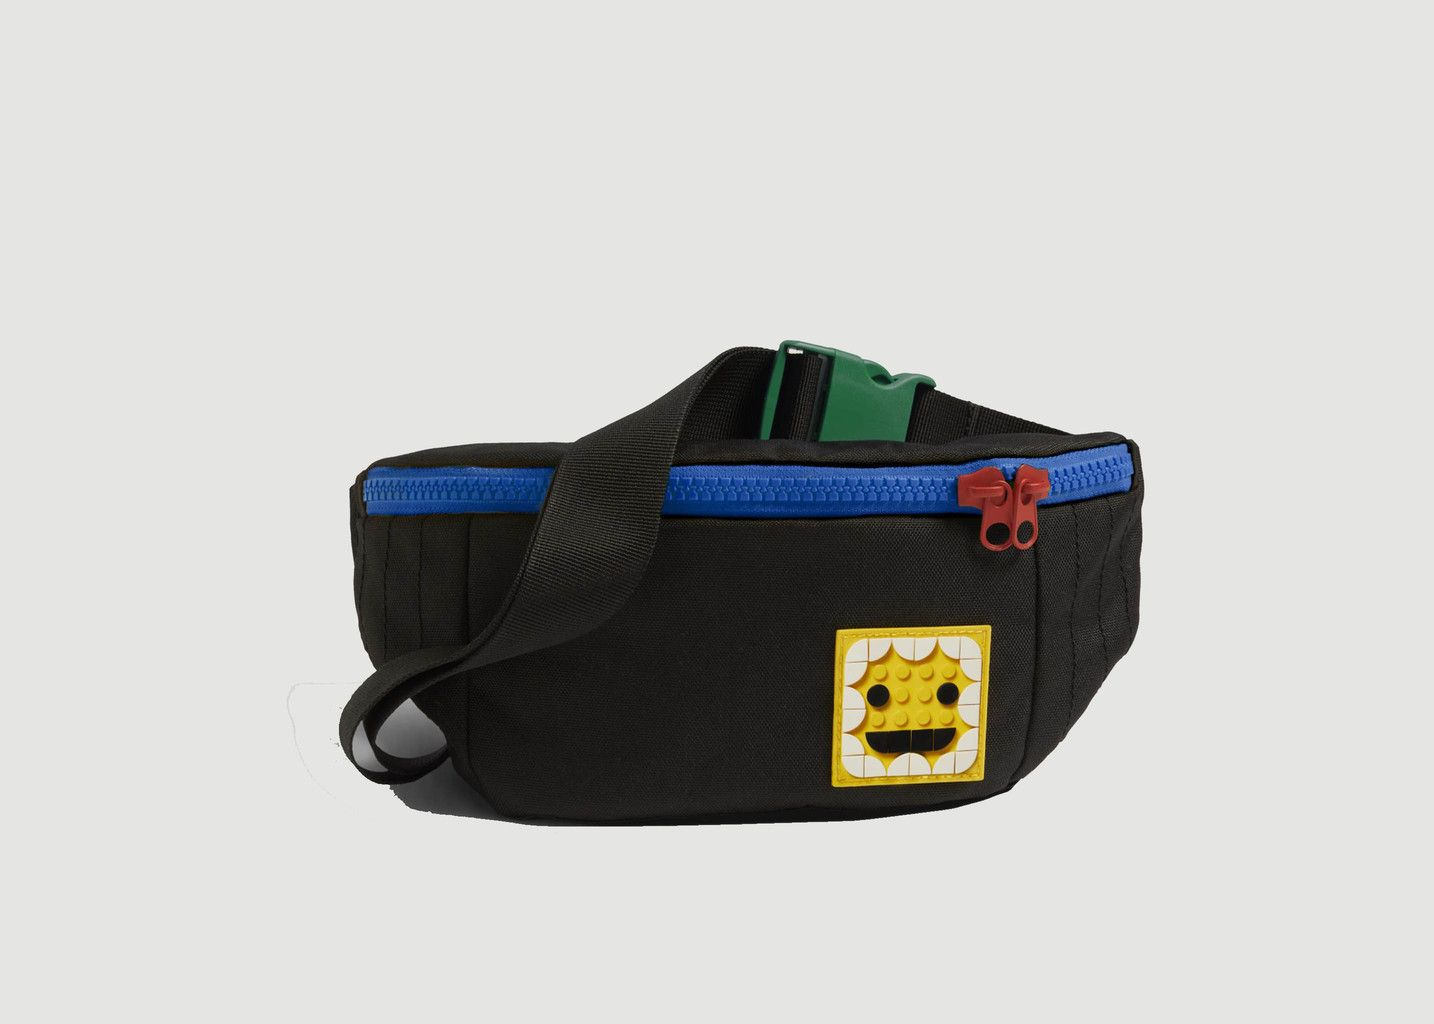 Sac banane en toile Levi's x LEGO Group - Levi's Red Tab